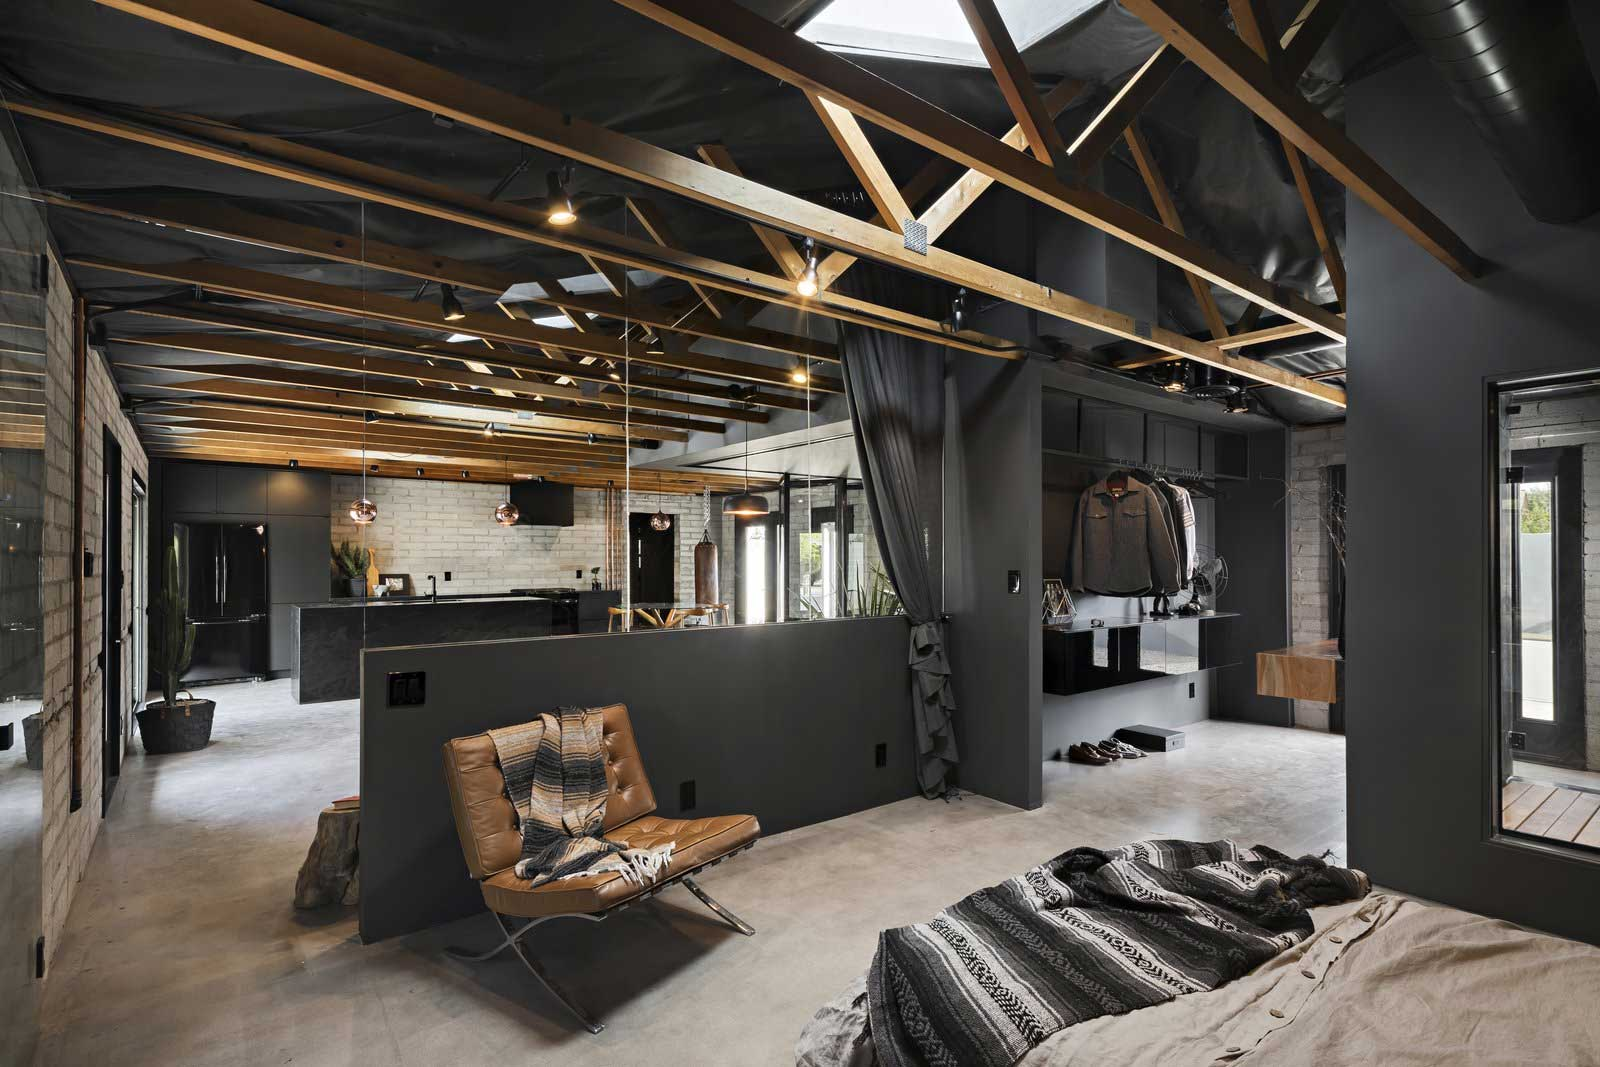 Traum-Loft: The Black House The-Black-House-Airbnb_05